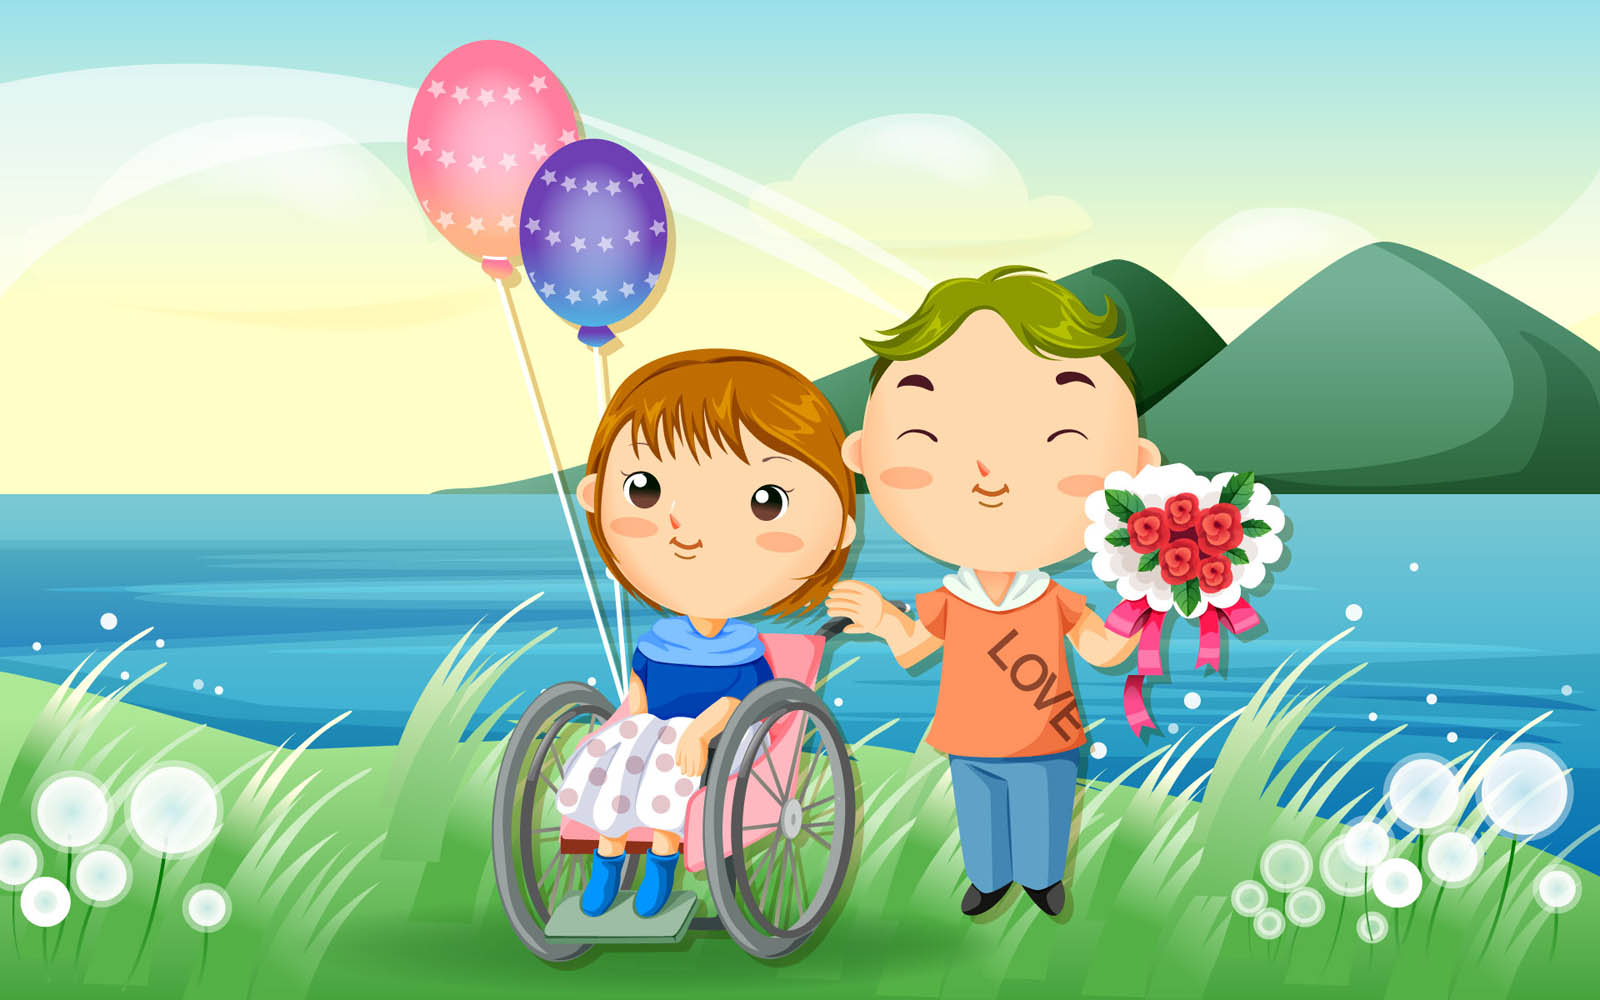 cartoon Wallpaper Of Love couple : wallpapers: cartoon Love Wallpapers